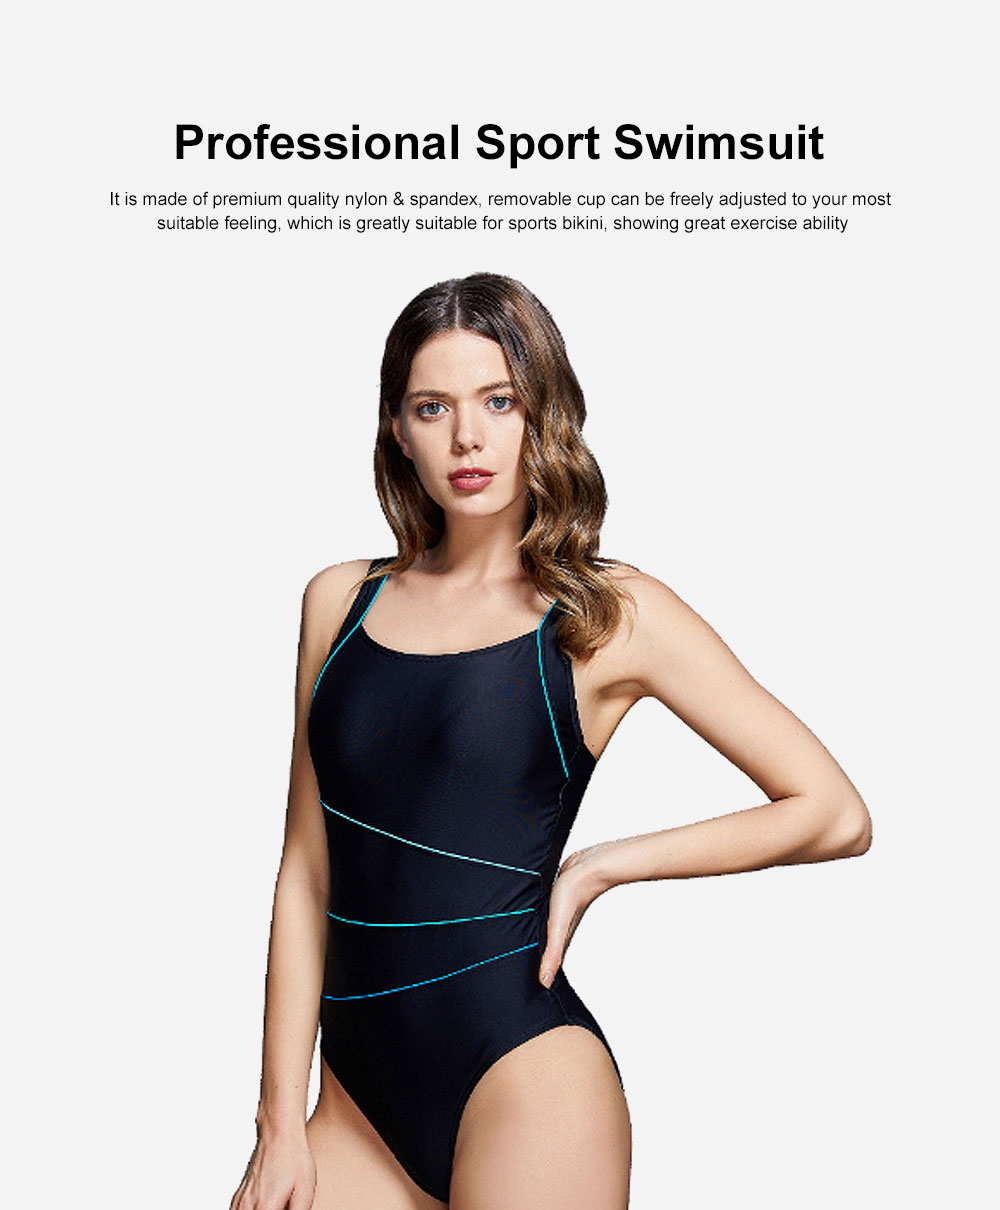 Professional Sport Swimsuit Minimalist Stylish Three Colors Joint Quick-dry Bikini with Elastic Dripping Belt 0